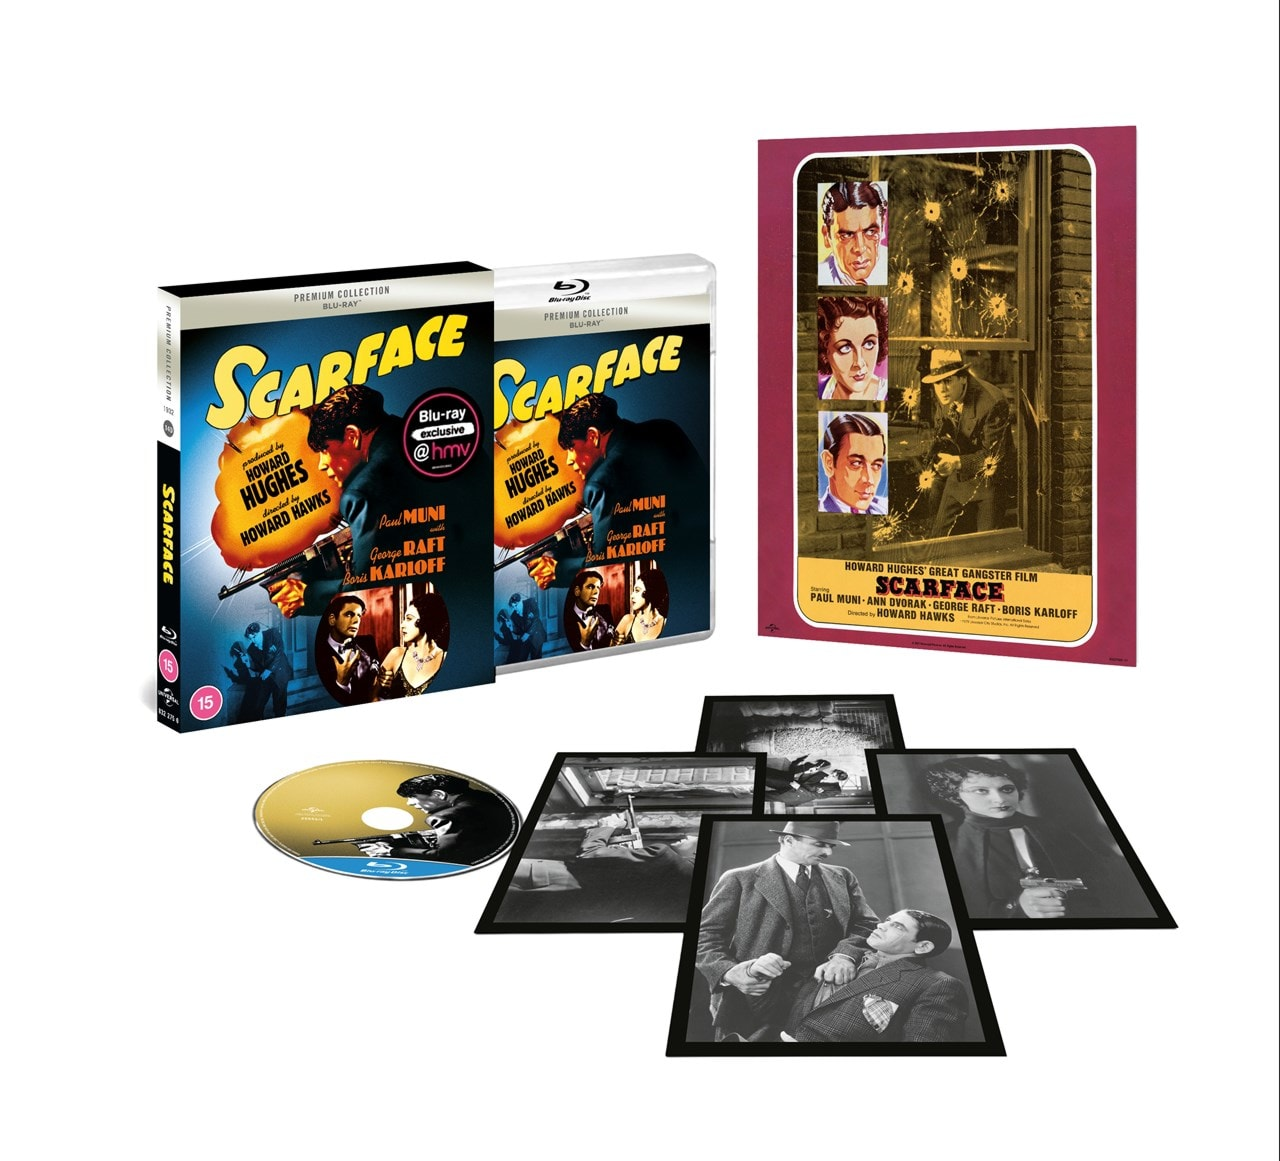 Scarface (hmv Exclusive) - The Premium Collection - 1